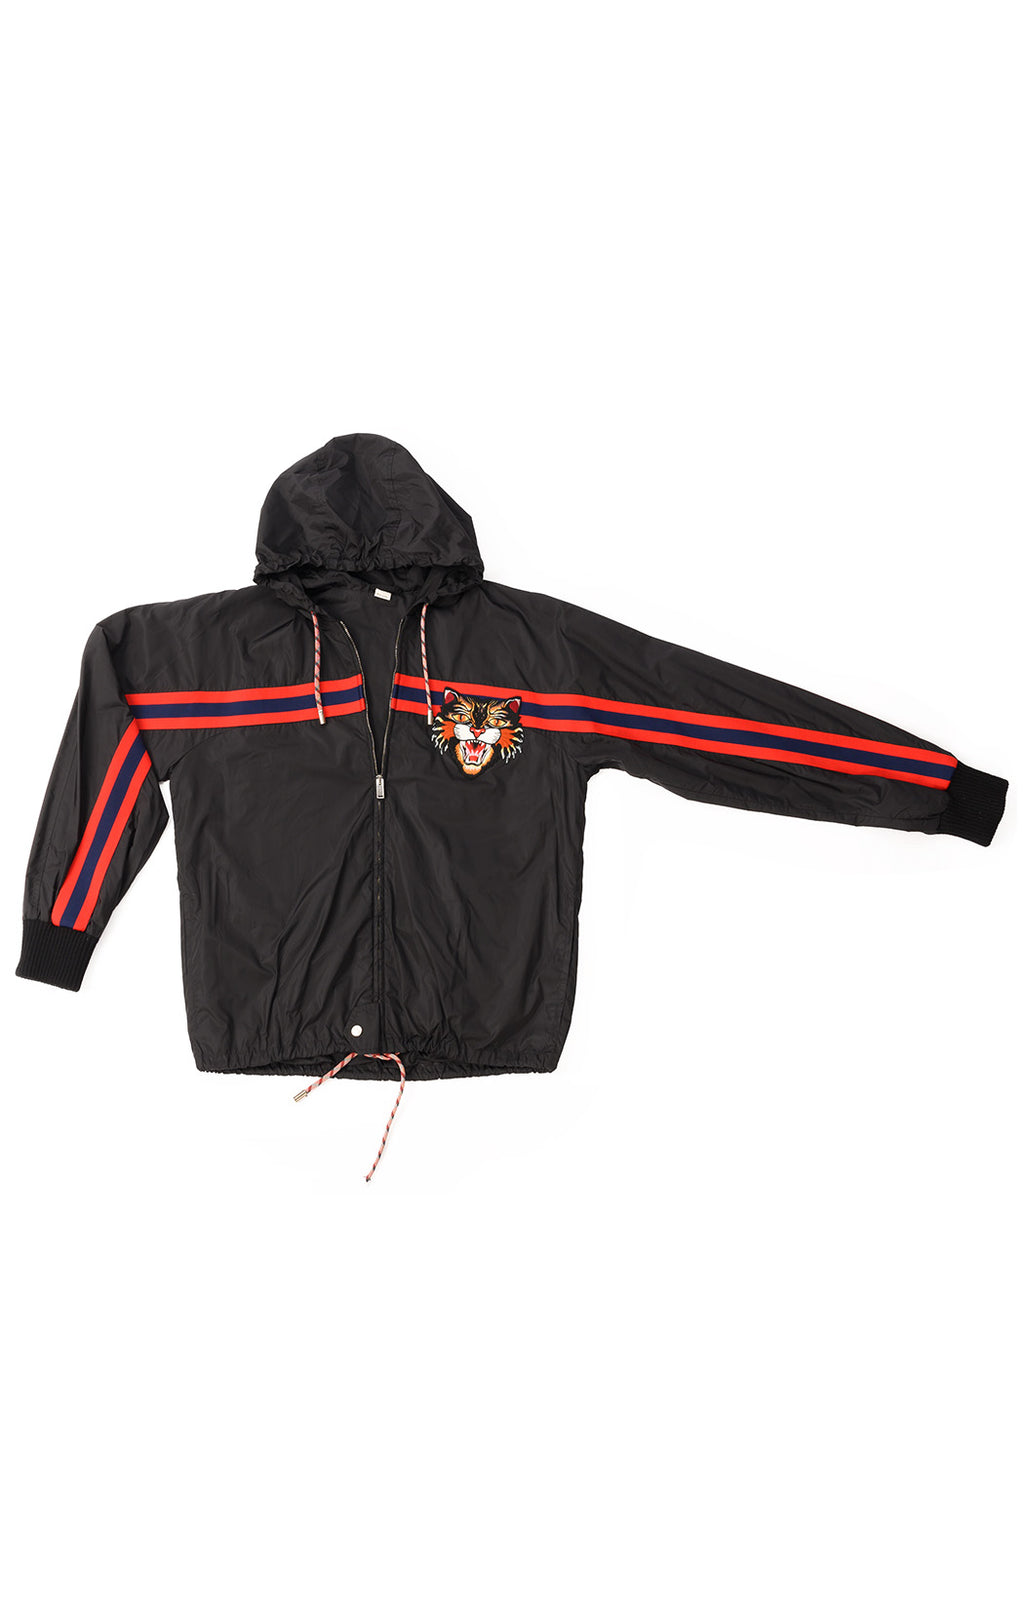 Front view of GUCCI  Jacket Size: IT 50 (comparable to US Medium)